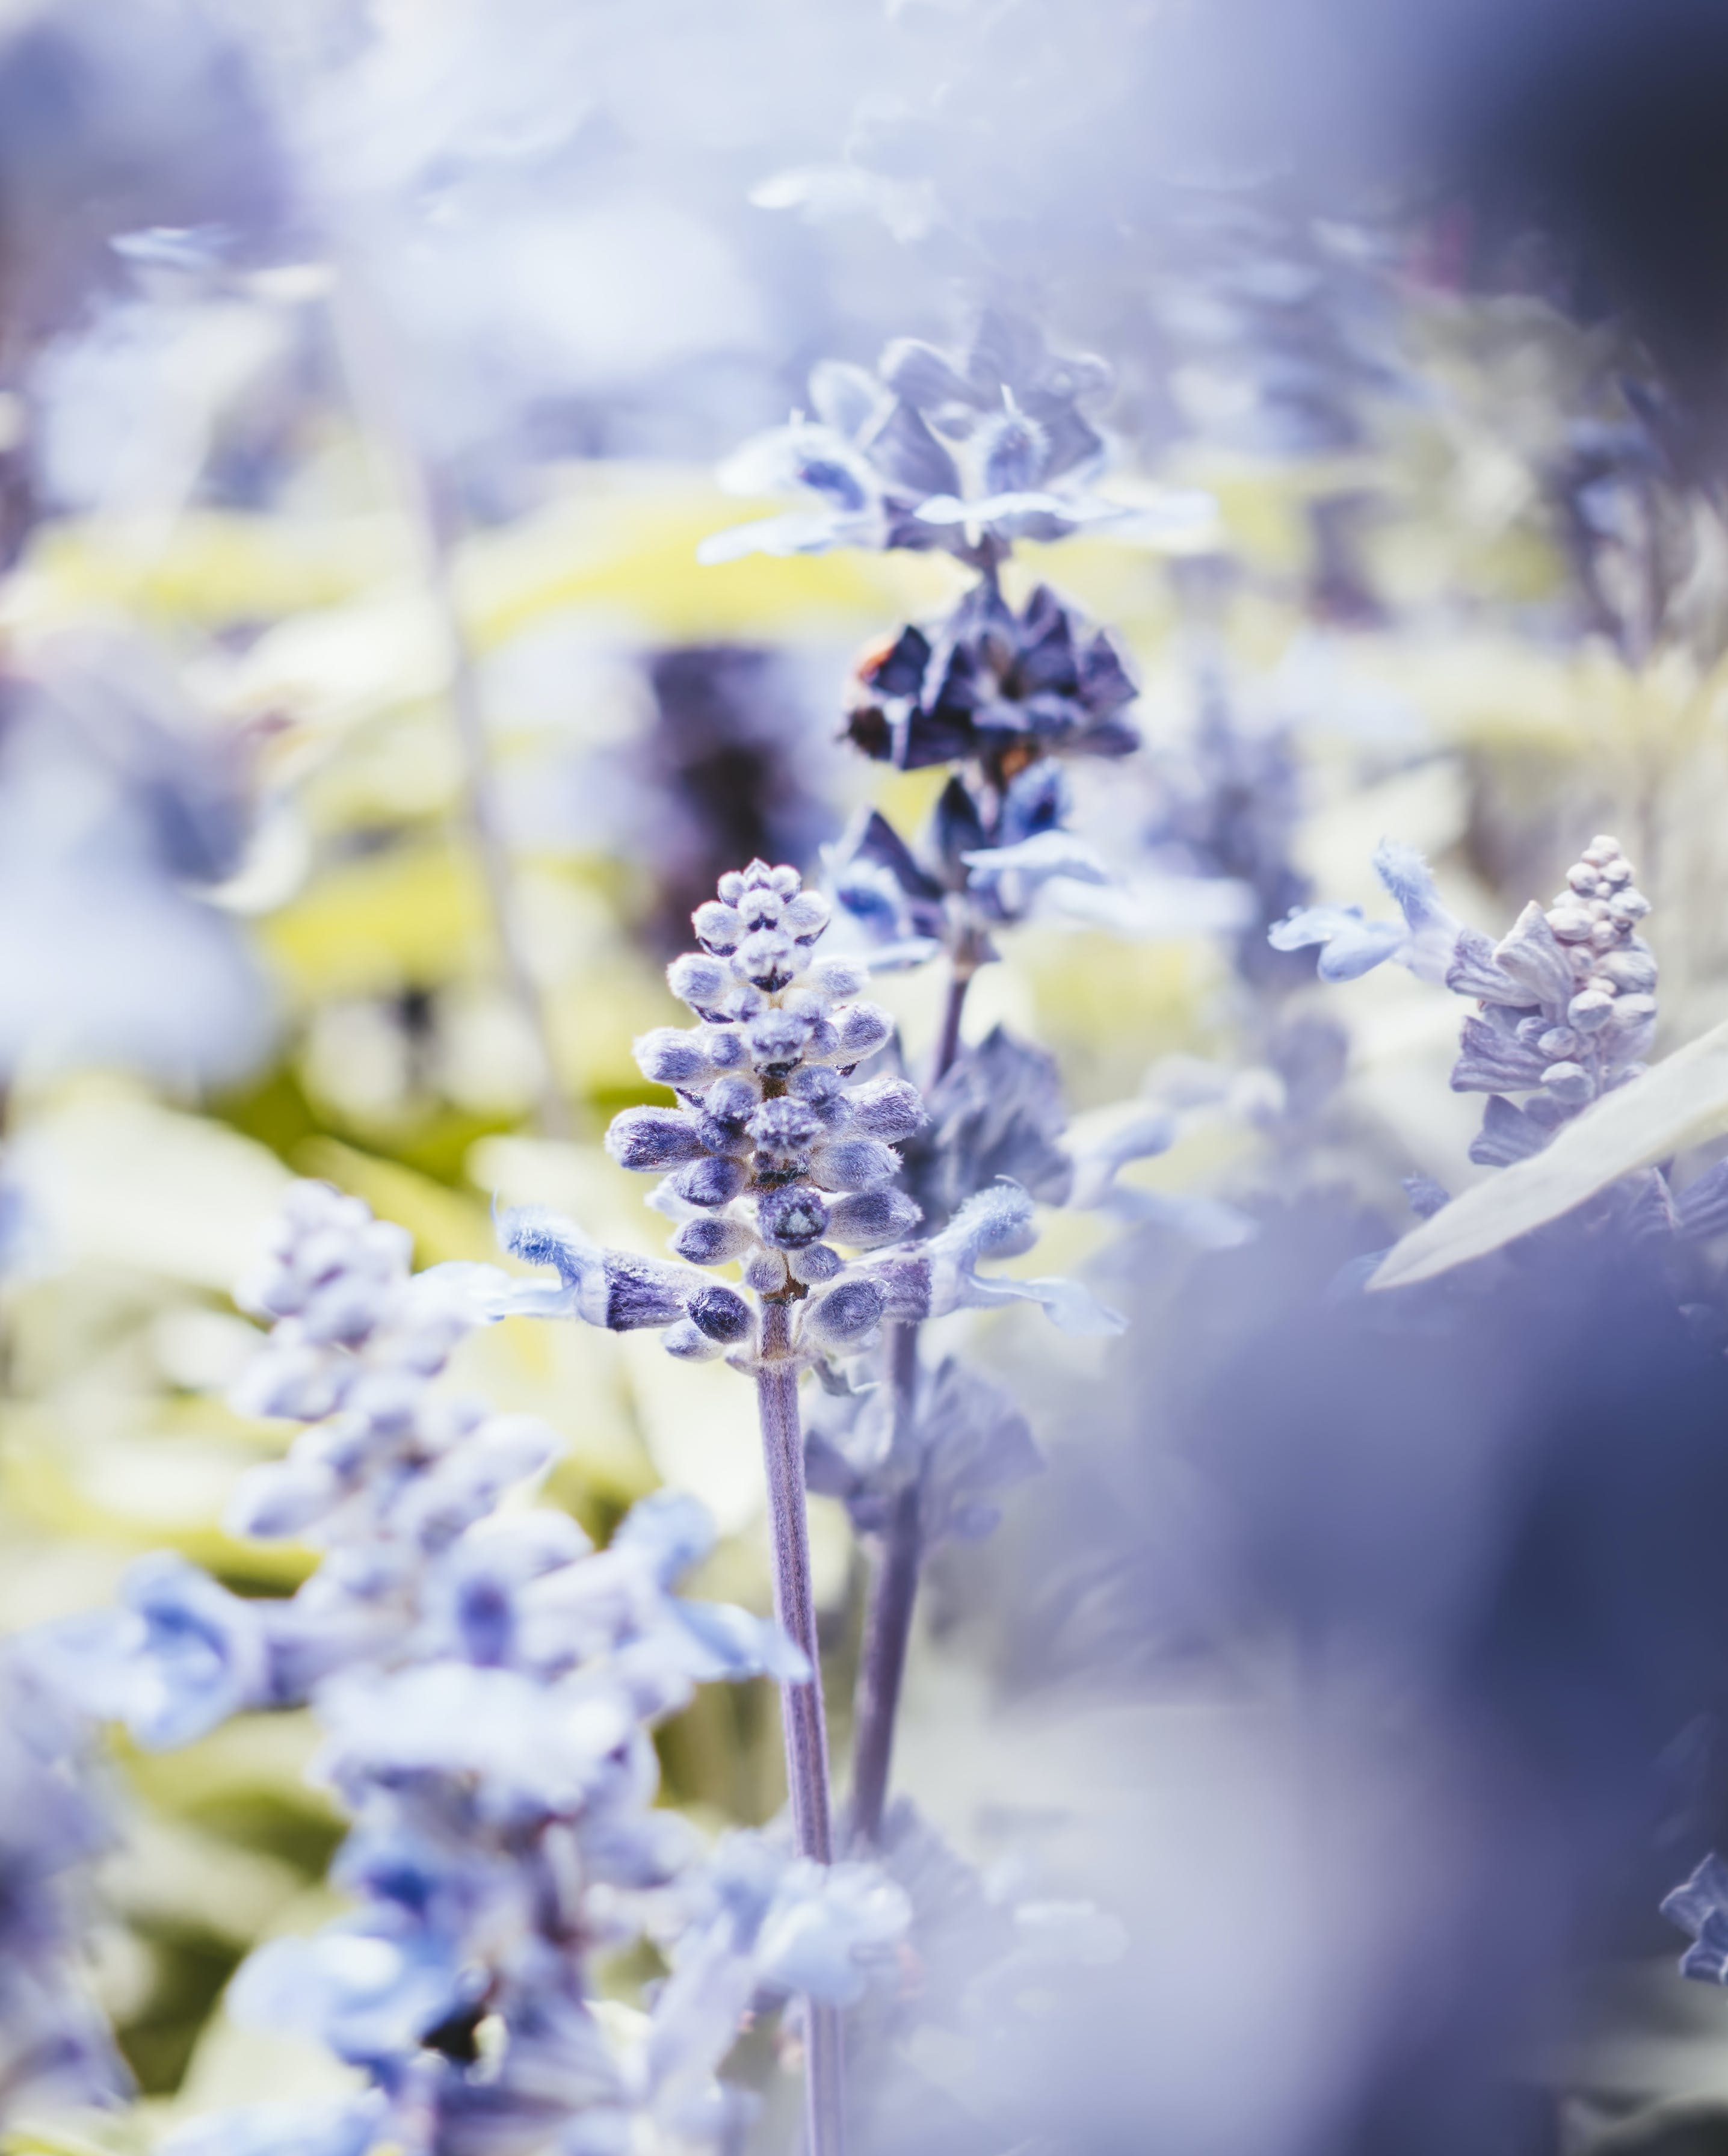 Close-Up Photography of Lavender Flowers